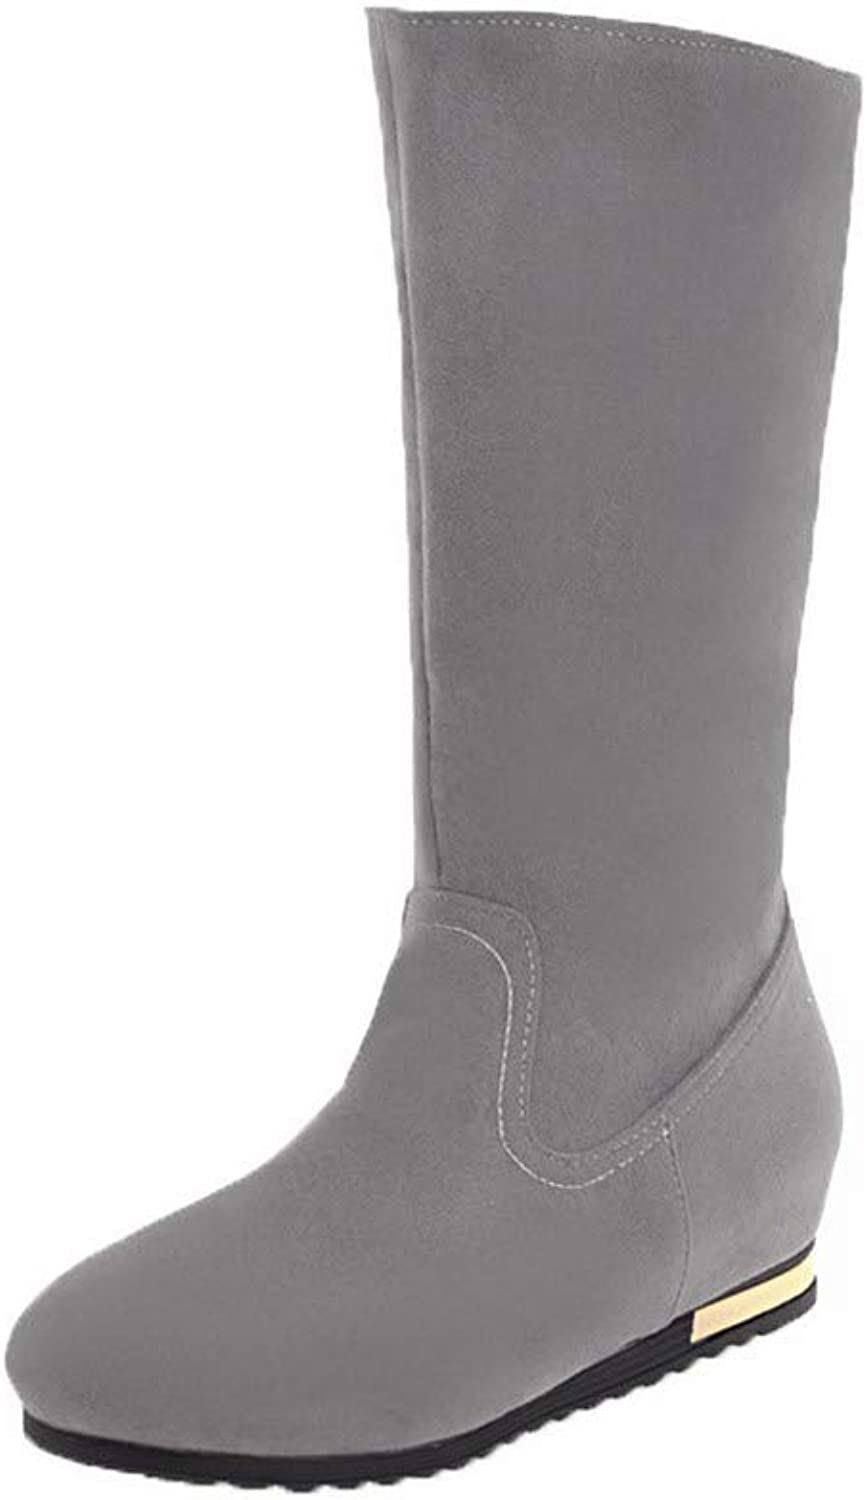 WeiPoot Women's Mid-Calf Pull-On Frosted Low-Heels Round-Toe Boots, EGHXH124382